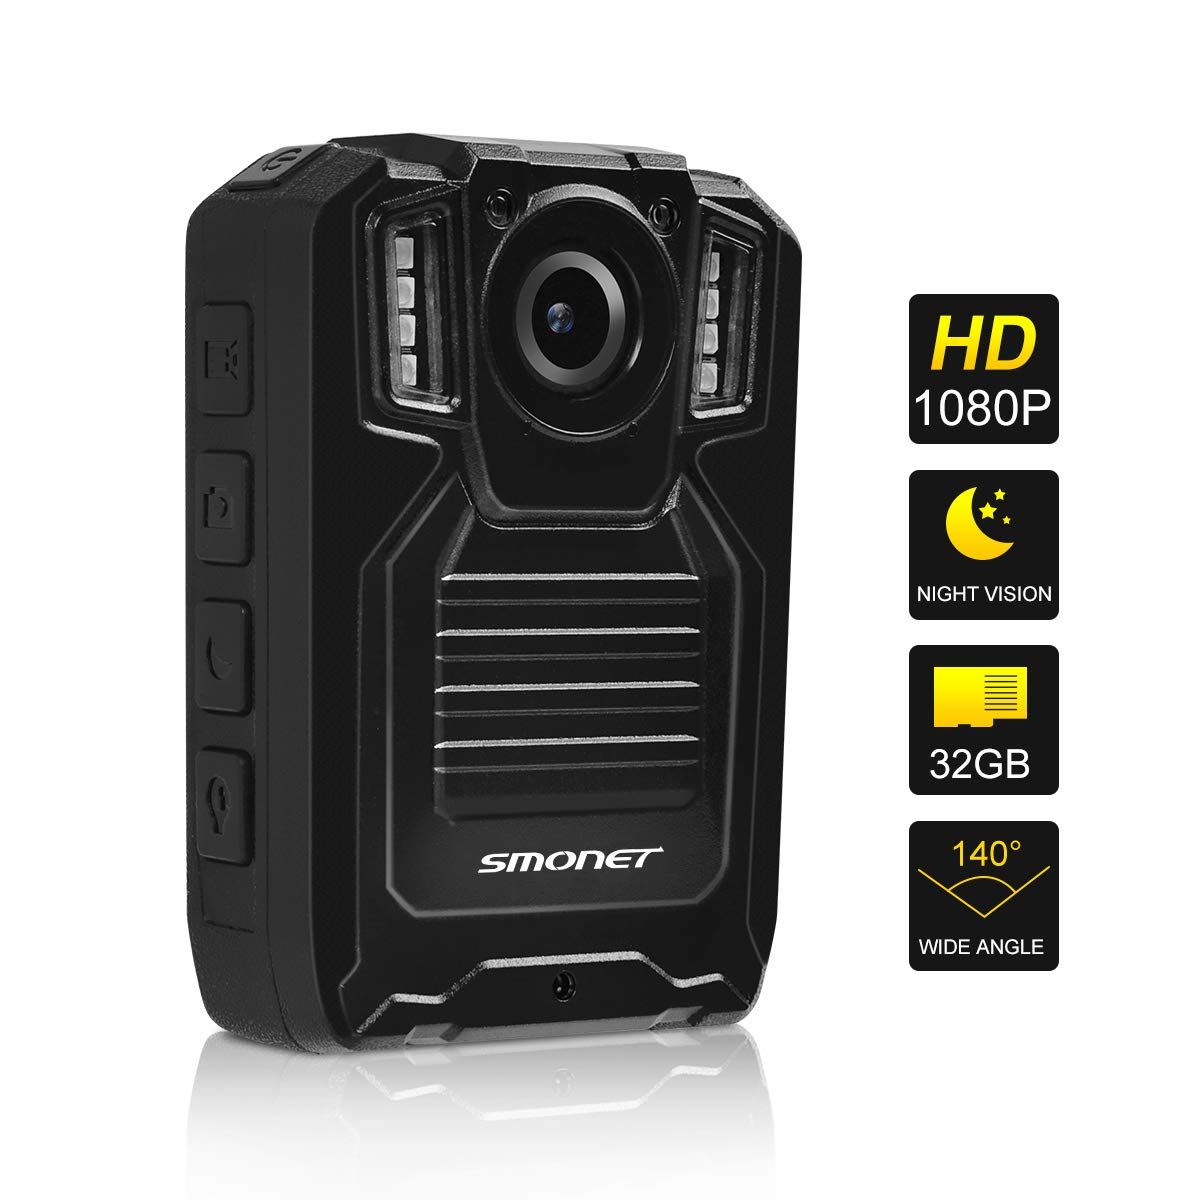 SMONET 【2019 New】 Body Camera with Audio, HD Multifunctional Police Body Cameras for Law Enforcement,Security Guard,Waterproof Body Worn Camera with Night Vision,2 Inch Display Video,Wide Angle(32GB)